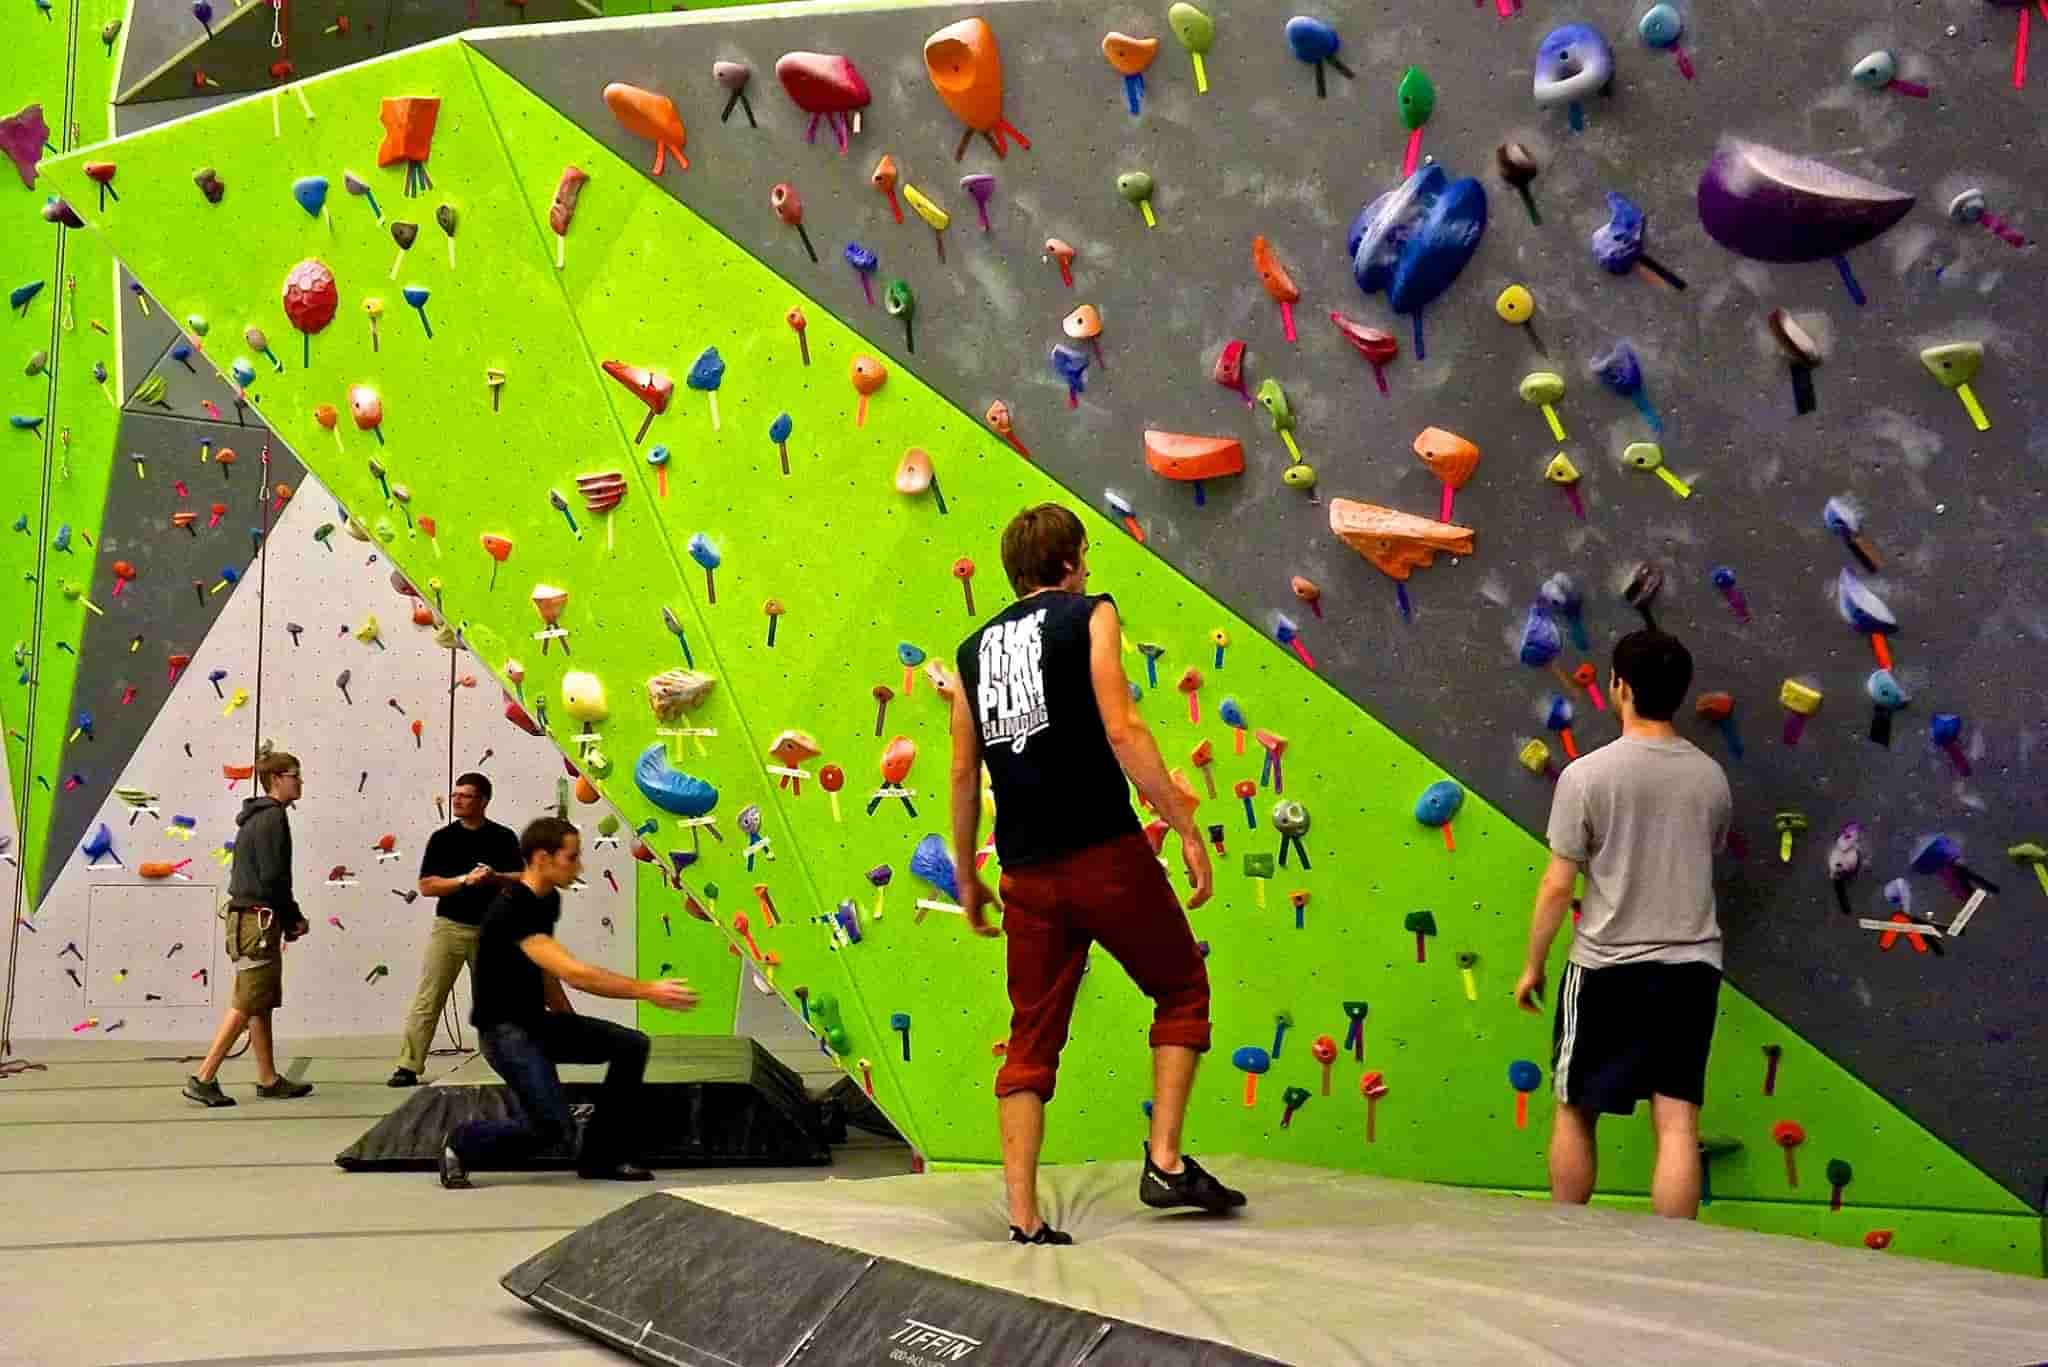 Spooky Nook Sports climbing gym